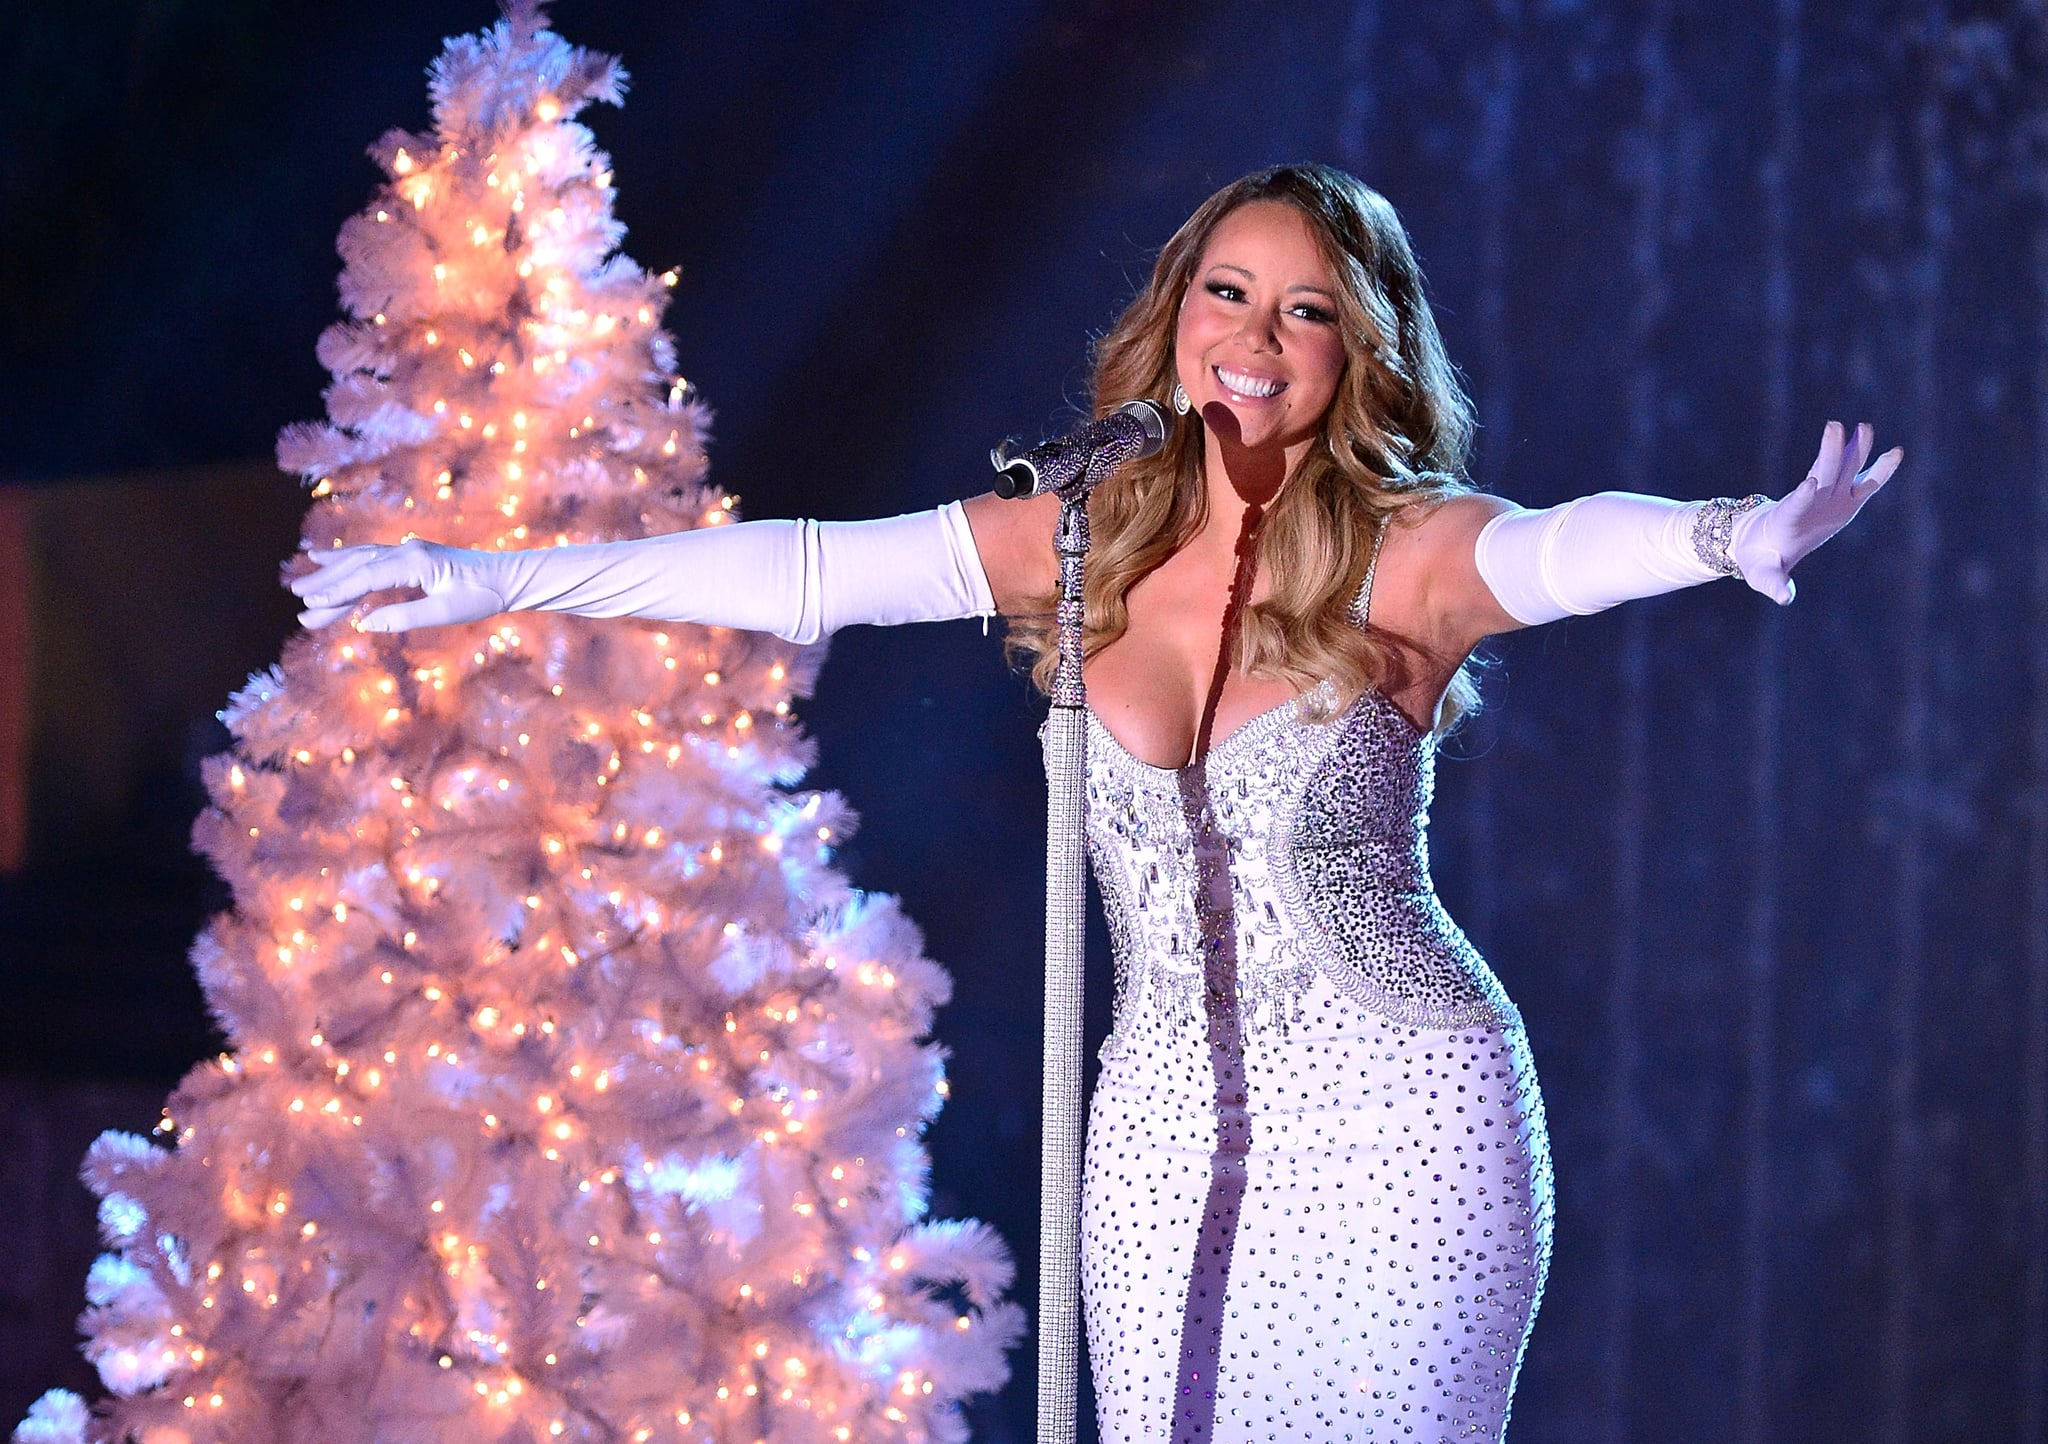 Mariah Carey Sparkles in Sexy Dress by the Christmas Tree